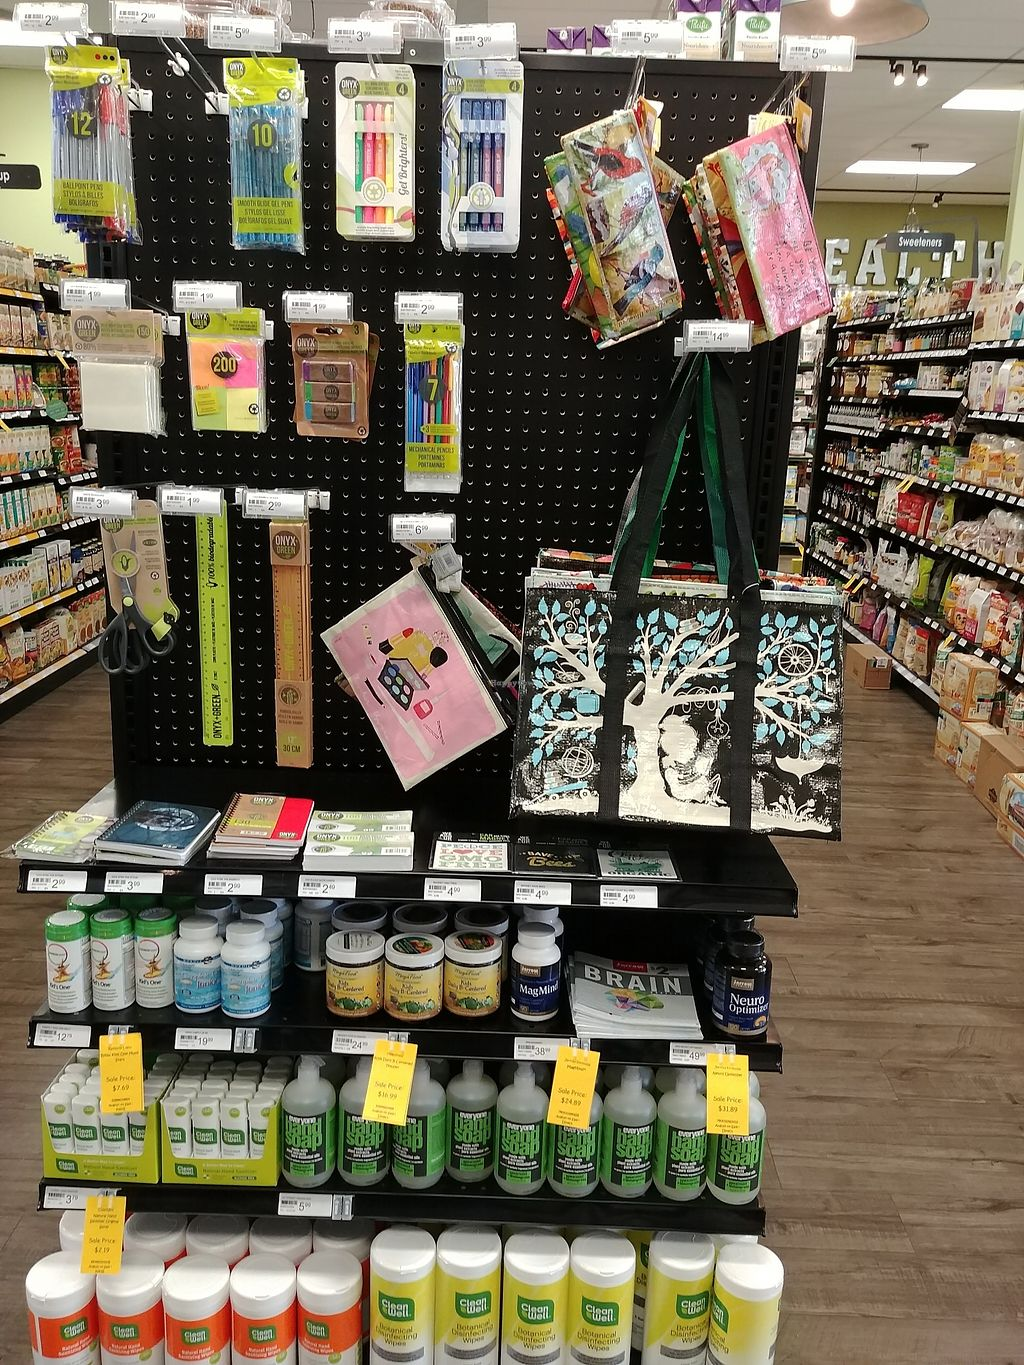 """Photo of Choices Natural Market  by <a href=""""/members/profile/PlantSim"""">PlantSim</a> <br/>They've got some cool stuff from Blue Q, as well as a sustainable school\office supplies <br/> August 22, 2017  - <a href='/contact/abuse/image/9689/296005'>Report</a>"""